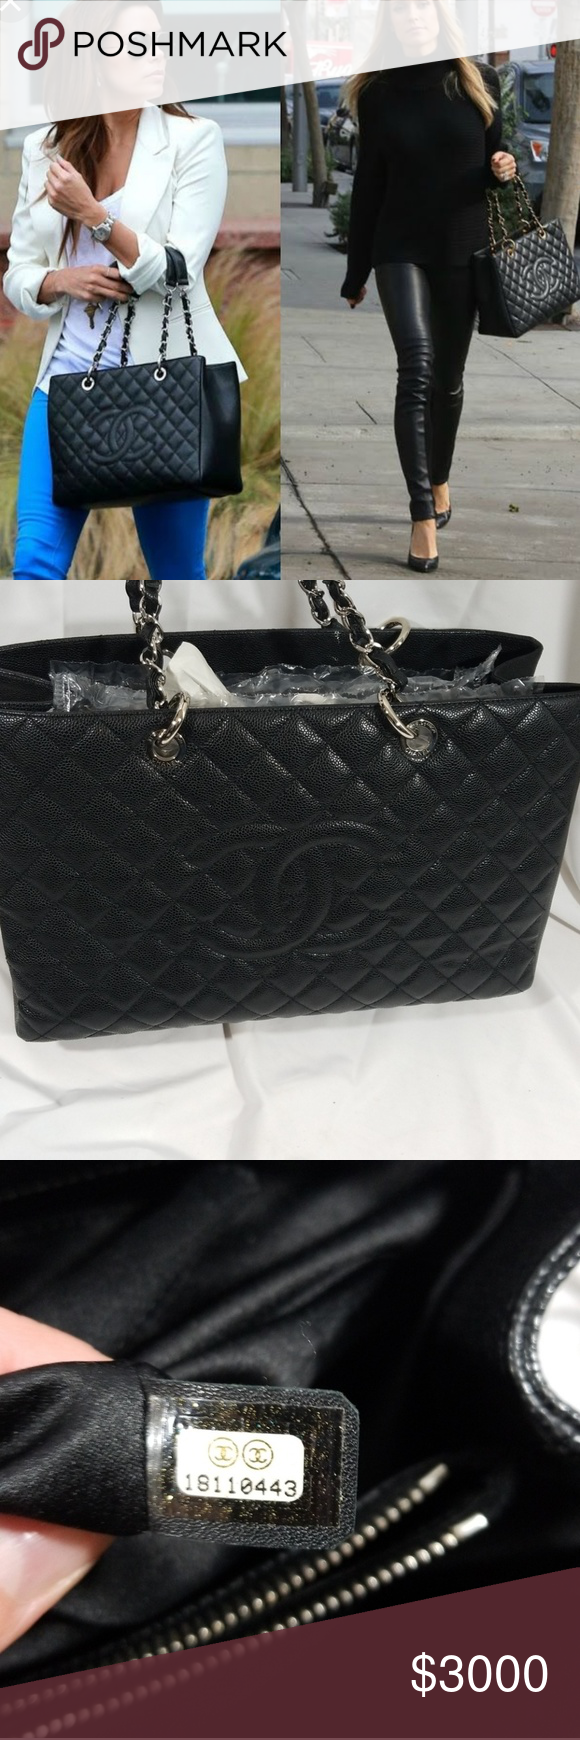 30c8a7493bef Authentic Chanel grand shopper tote in black 100% authentic black caviar  leather Chanel grand shopping tote. Silvertone hardware.